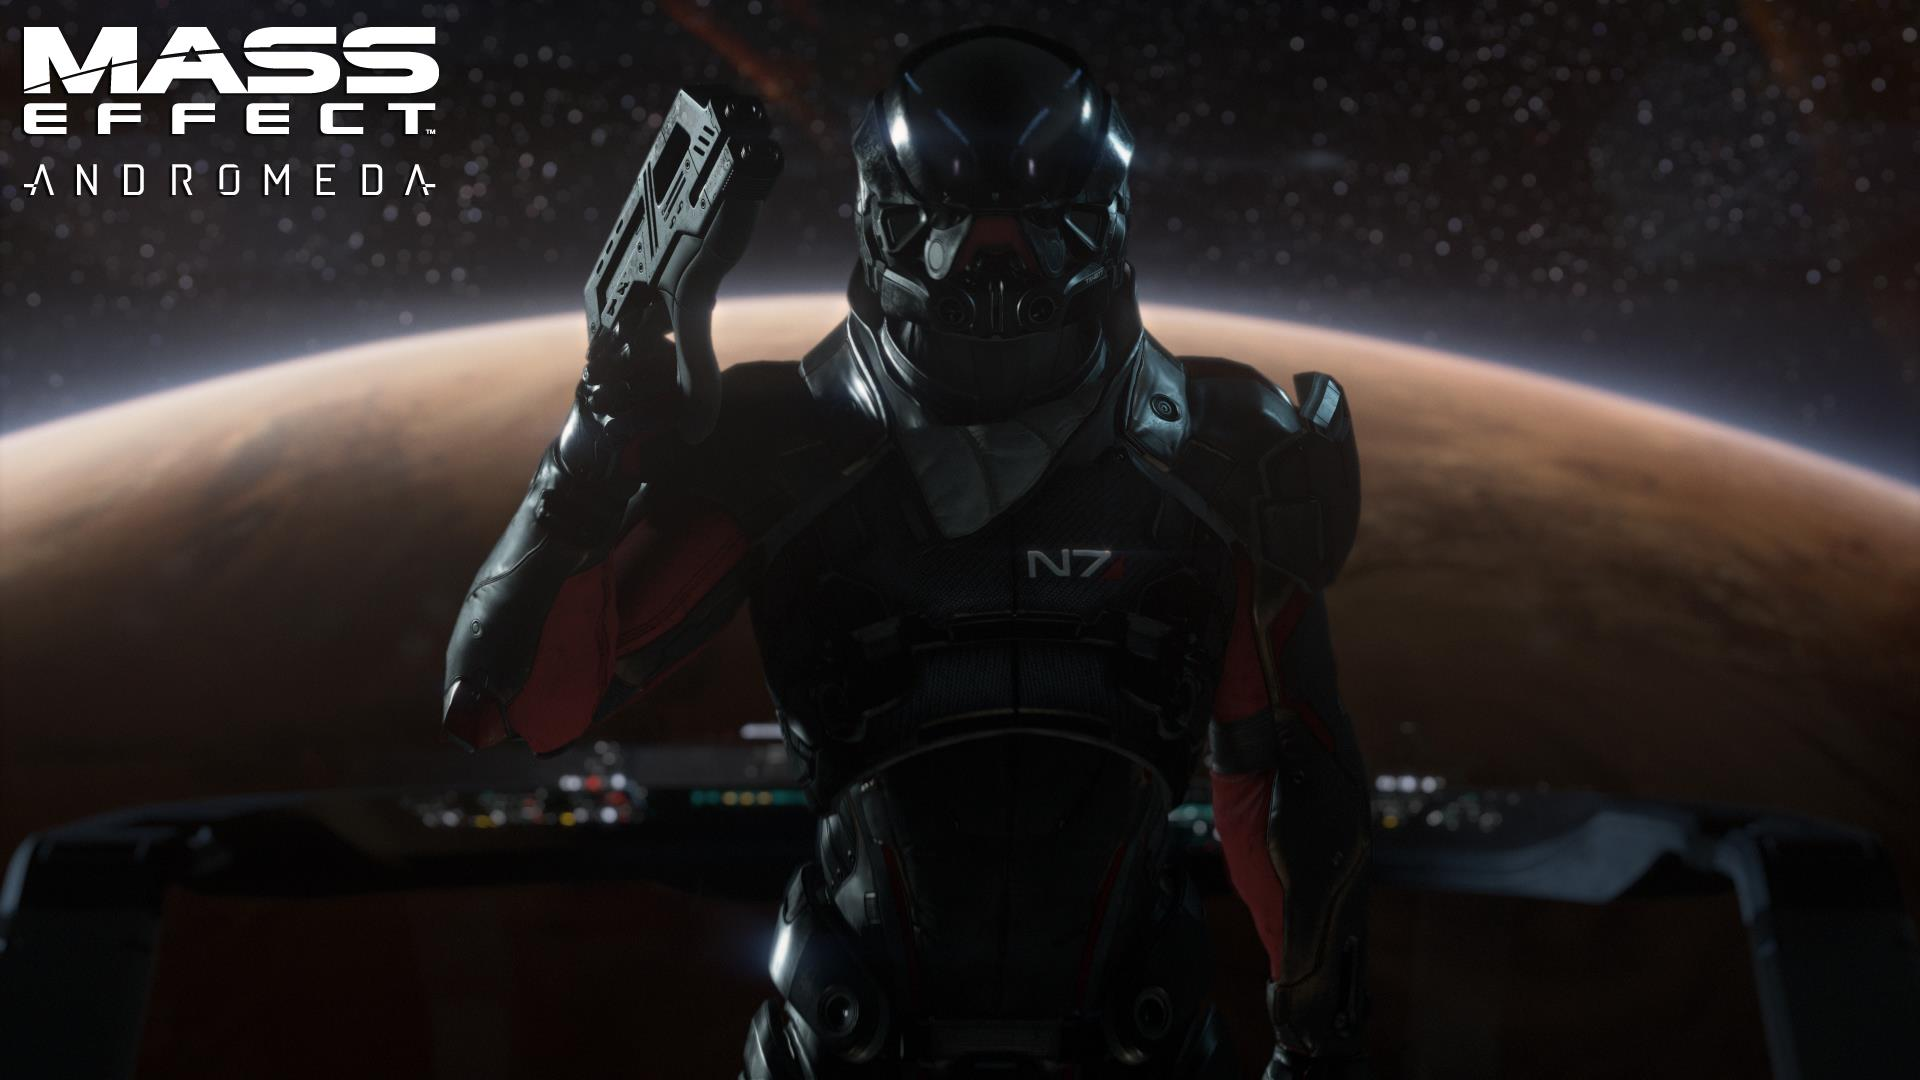 Mass Effect Andromeda Will Be Released In March Ars Technica